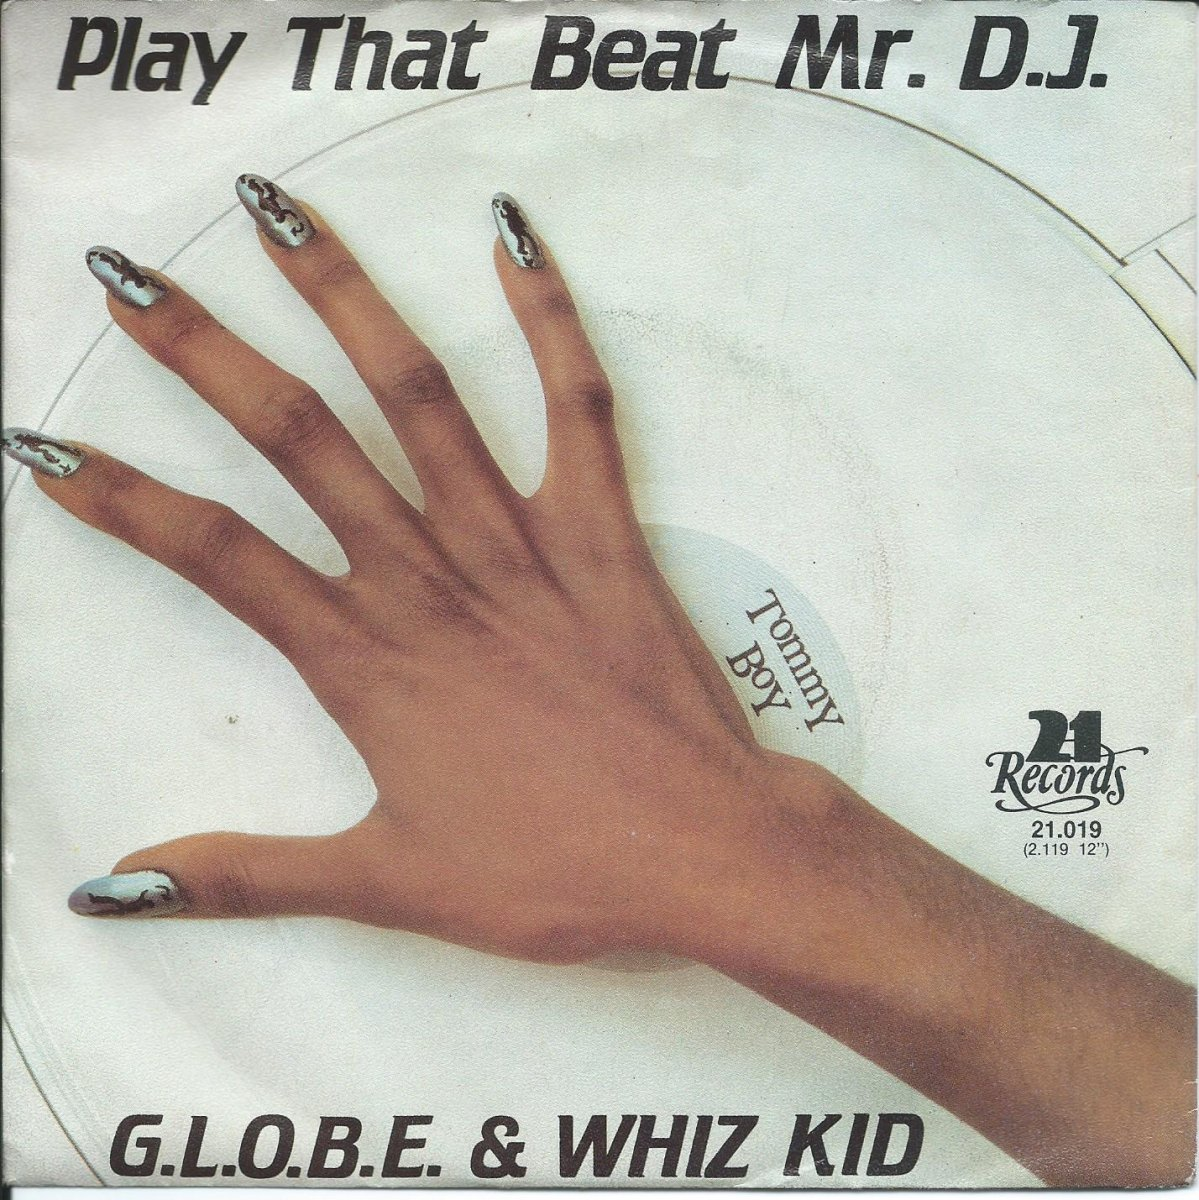 G.L.O.B.E. & WHIZ KID / PLAY THAT BEAT MR. D.J. (7